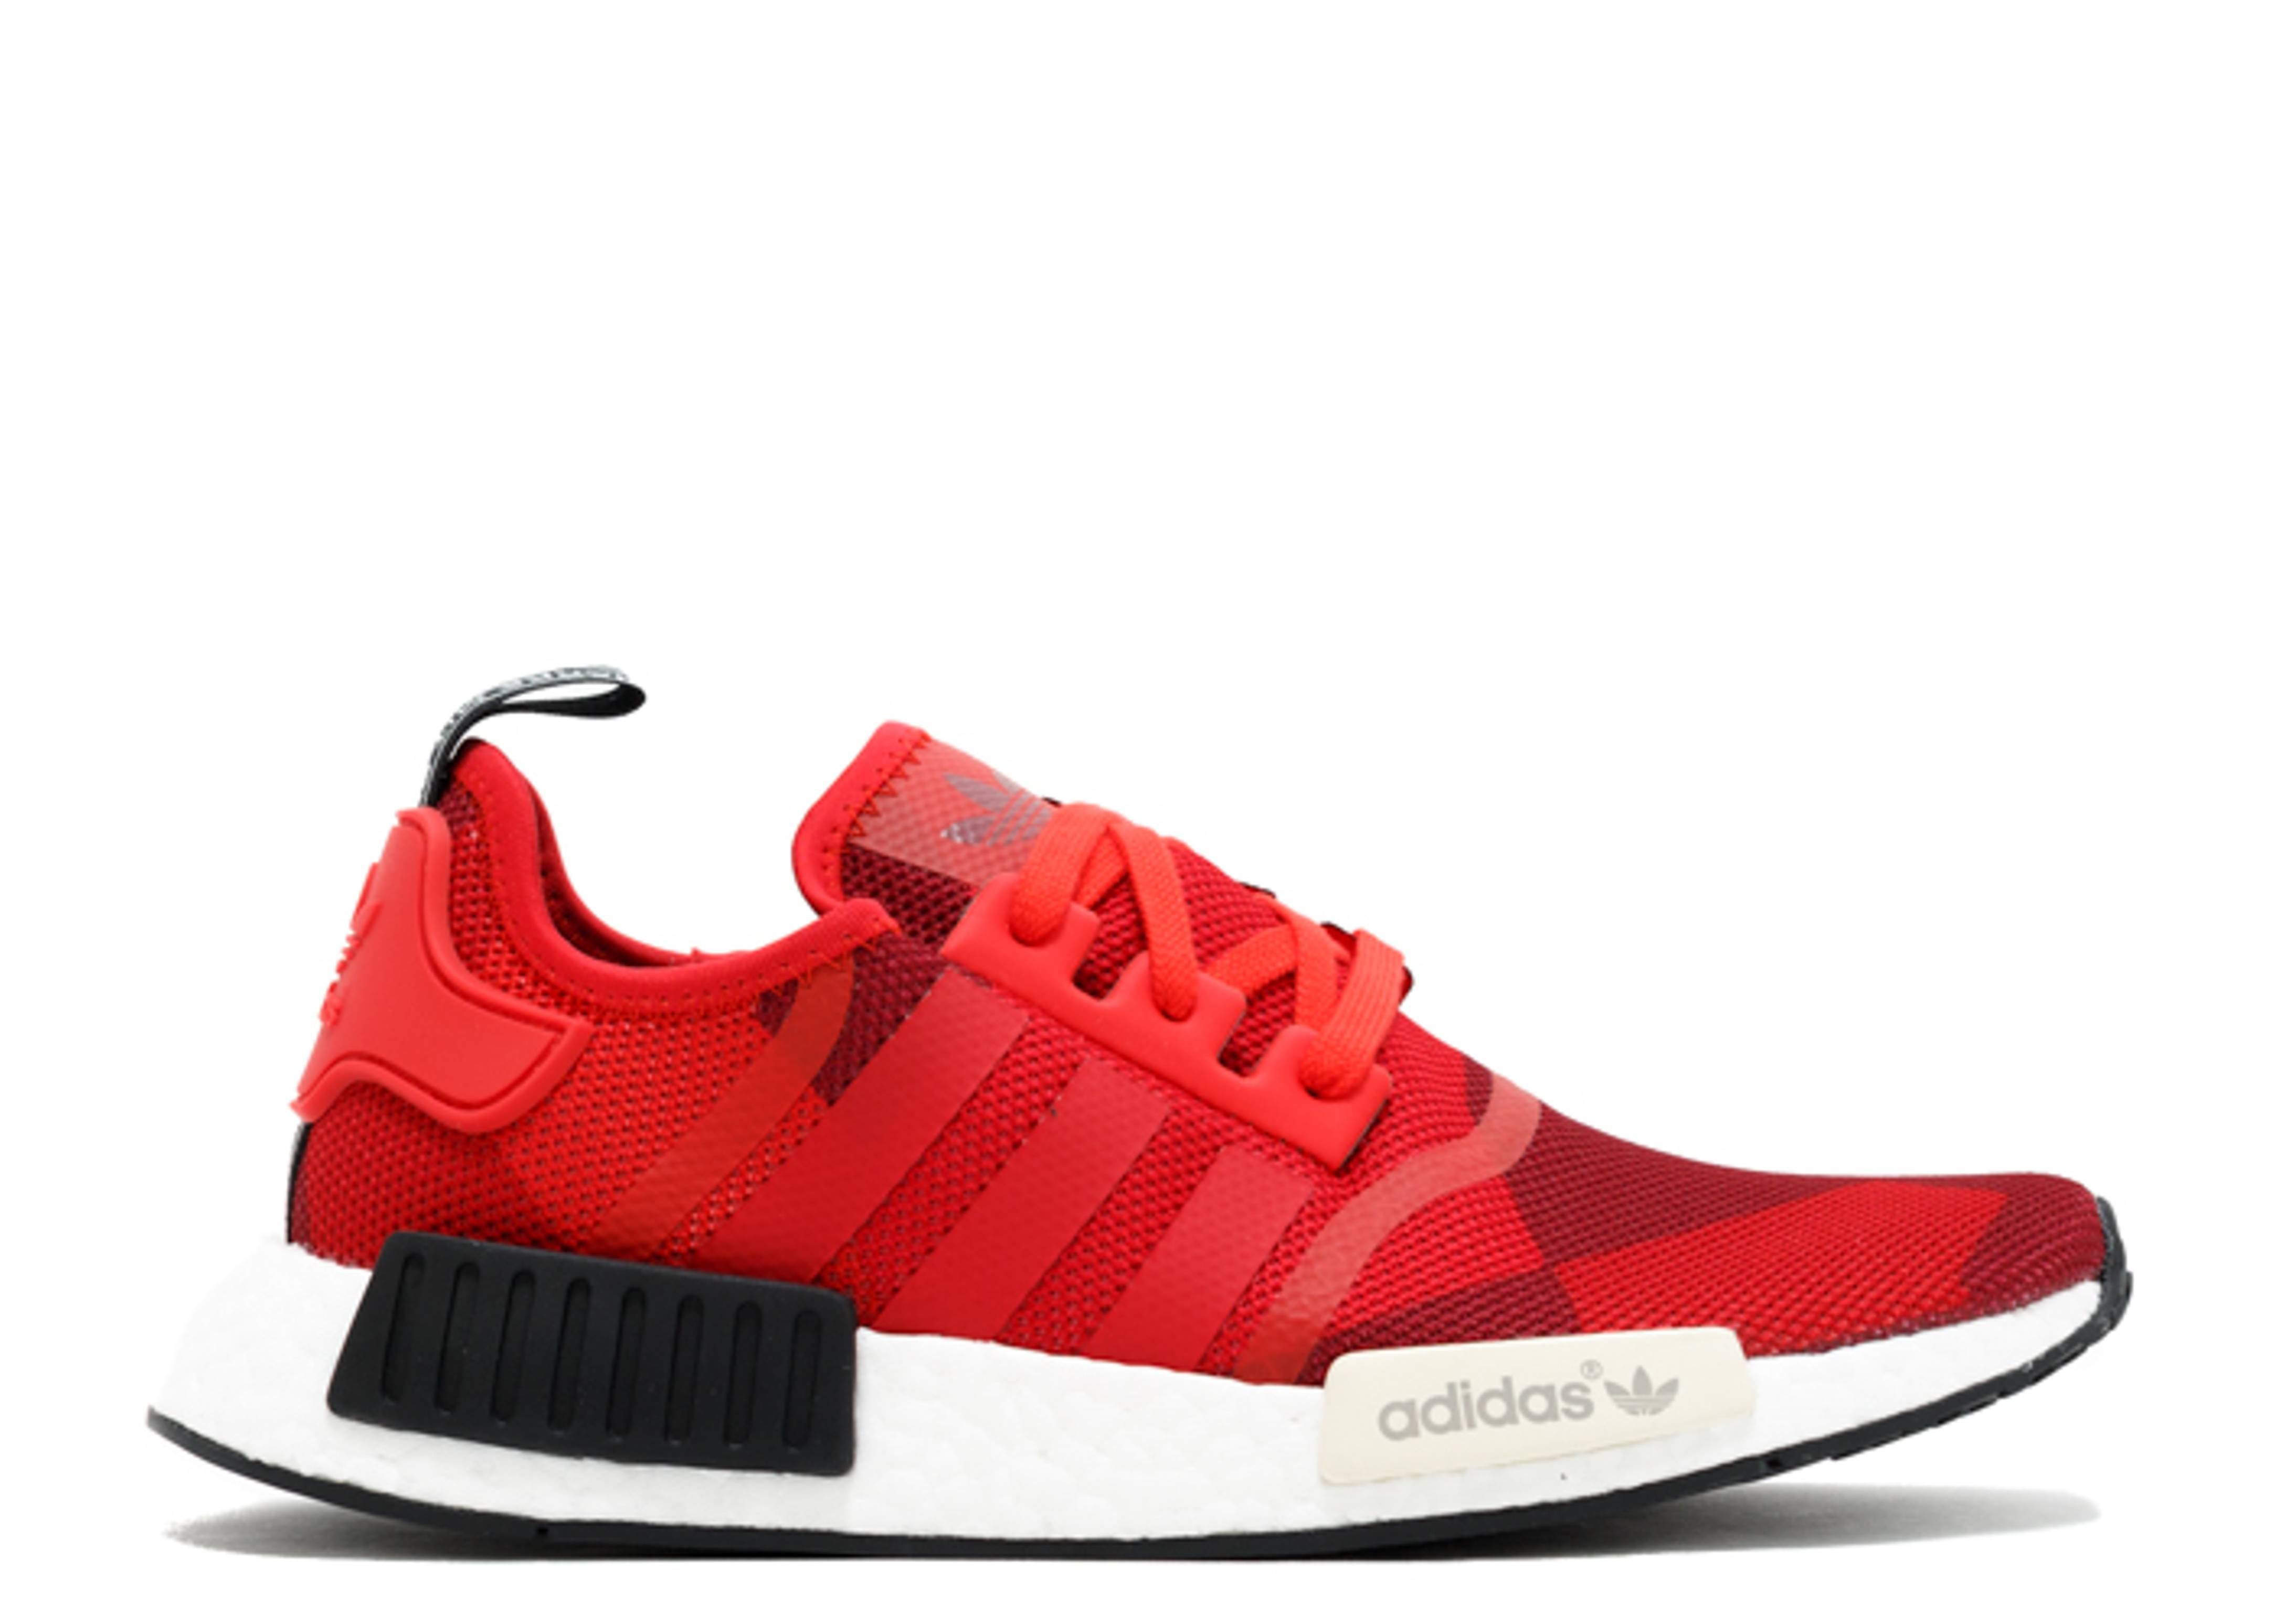 adidas NMD R1 Sneaker Nomad Running White Icey Pink